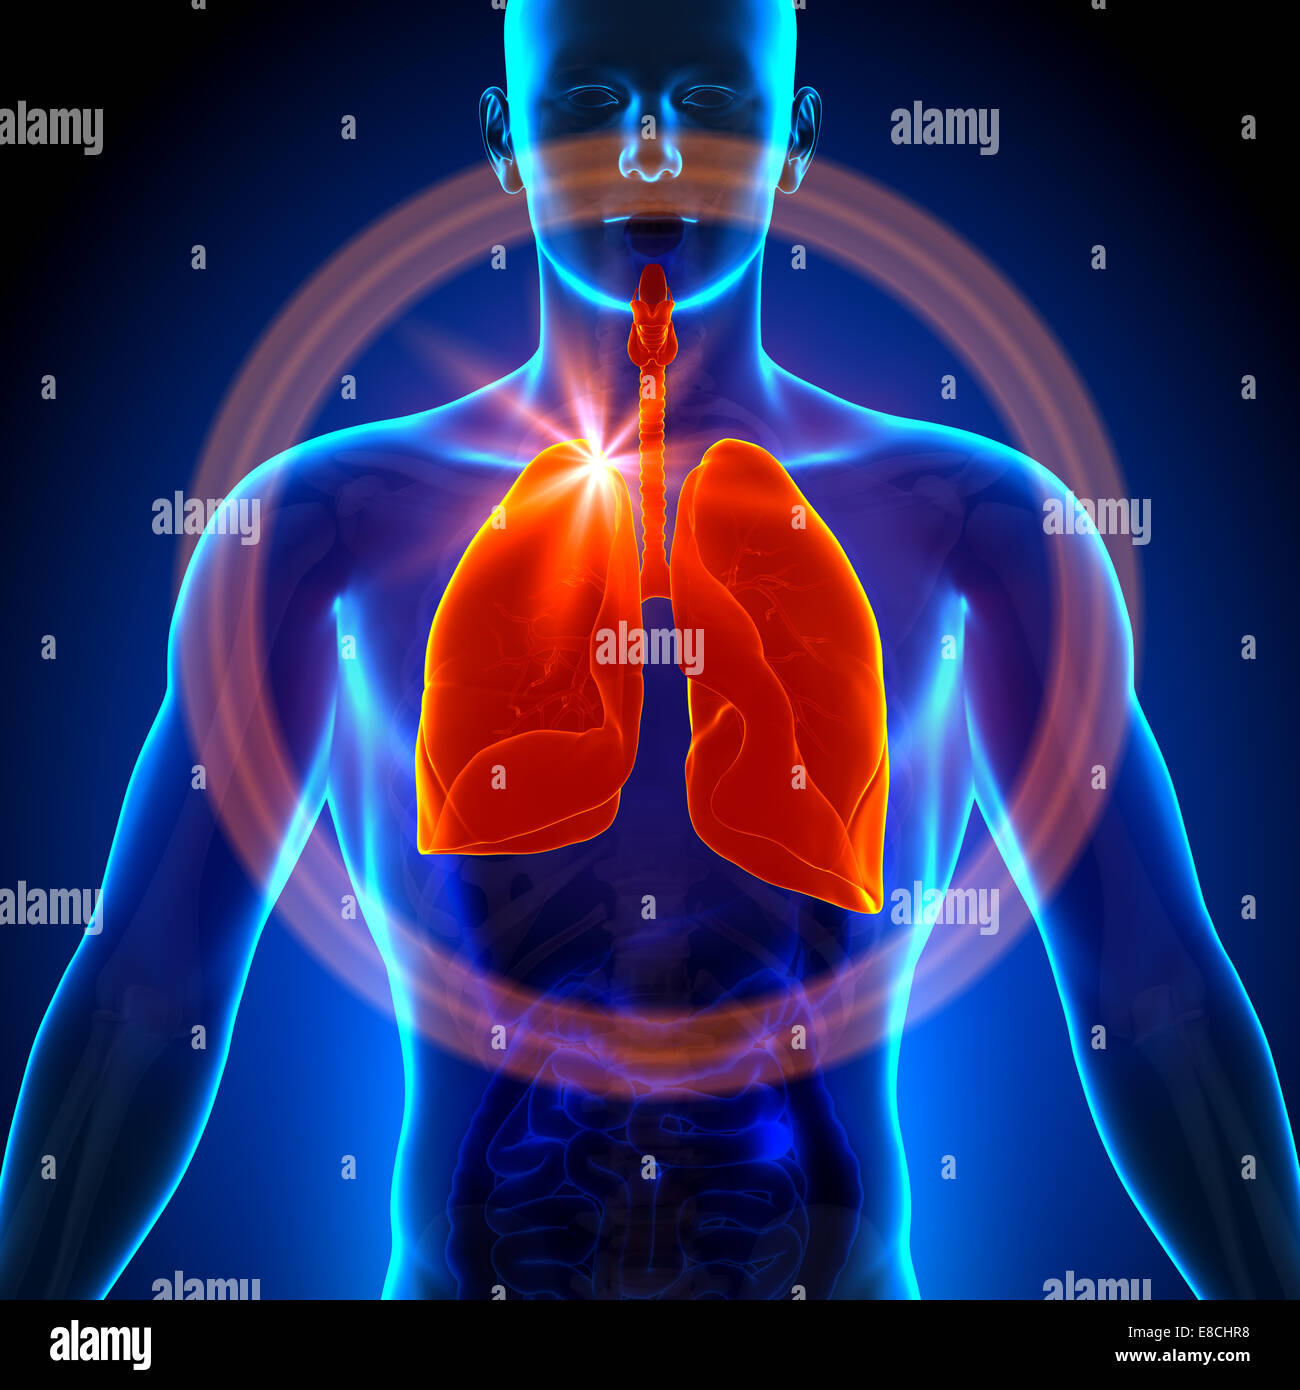 Lungs - Male anatomy of human organs - x-ray view Stock Photo ...